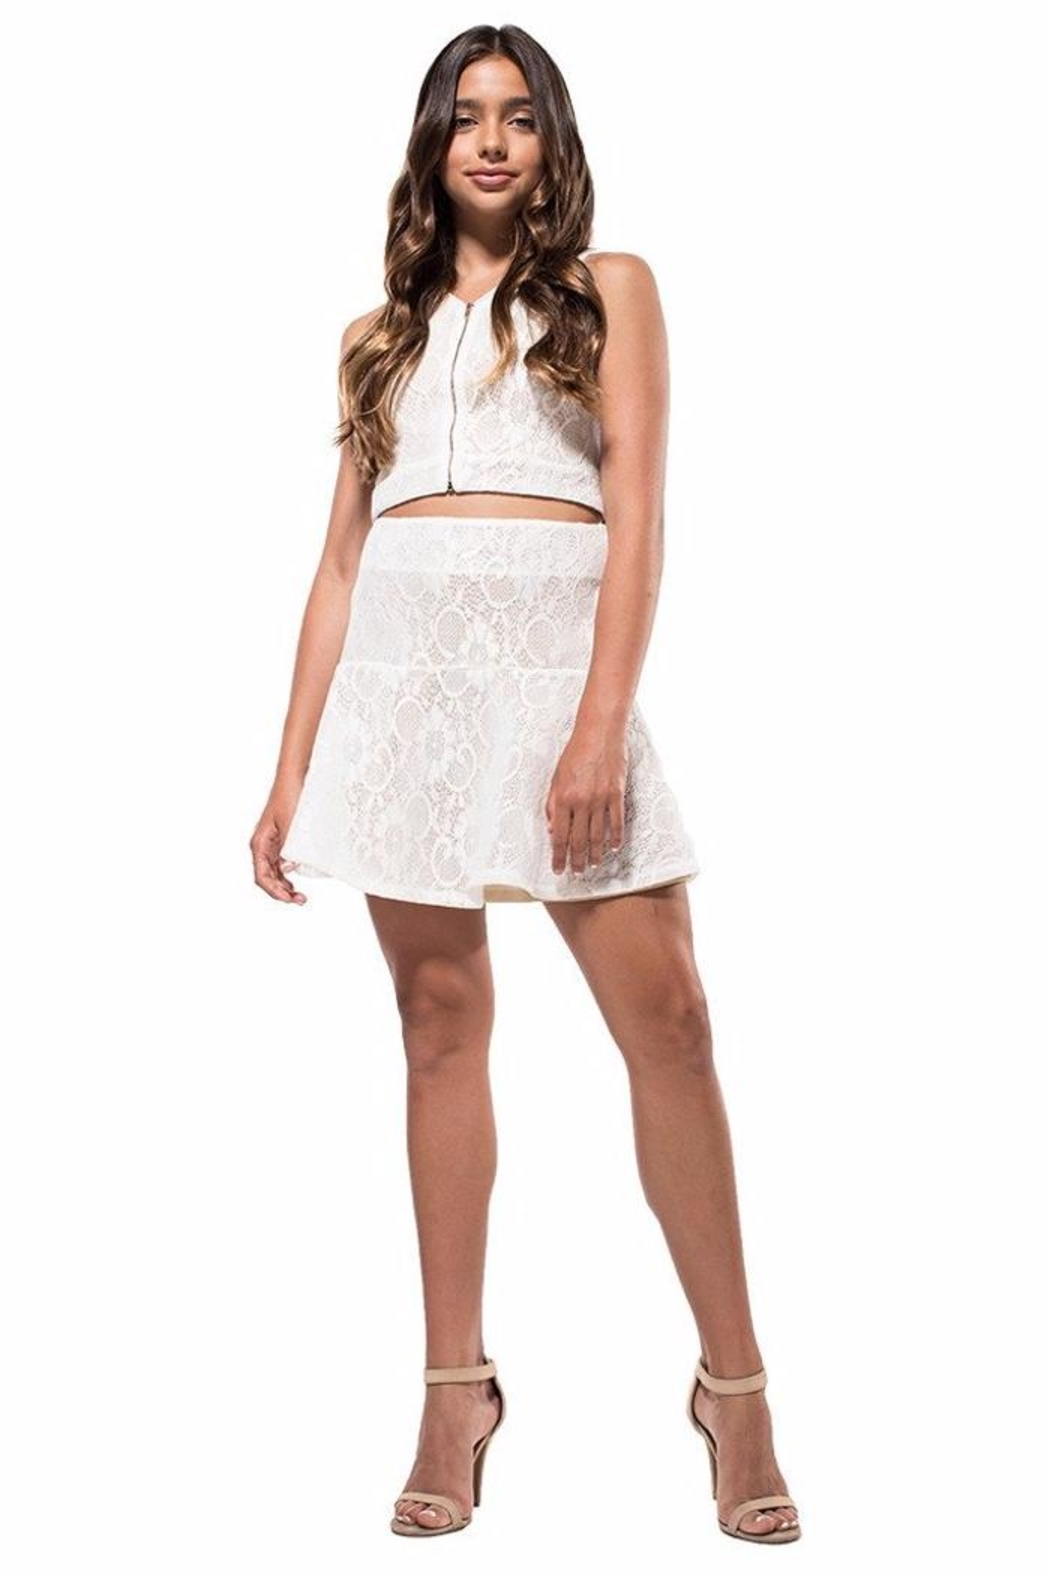 a6d678b9d0b8 Miss Behave girls Tessa White Set from Miami by Neptunes — Shoptiques